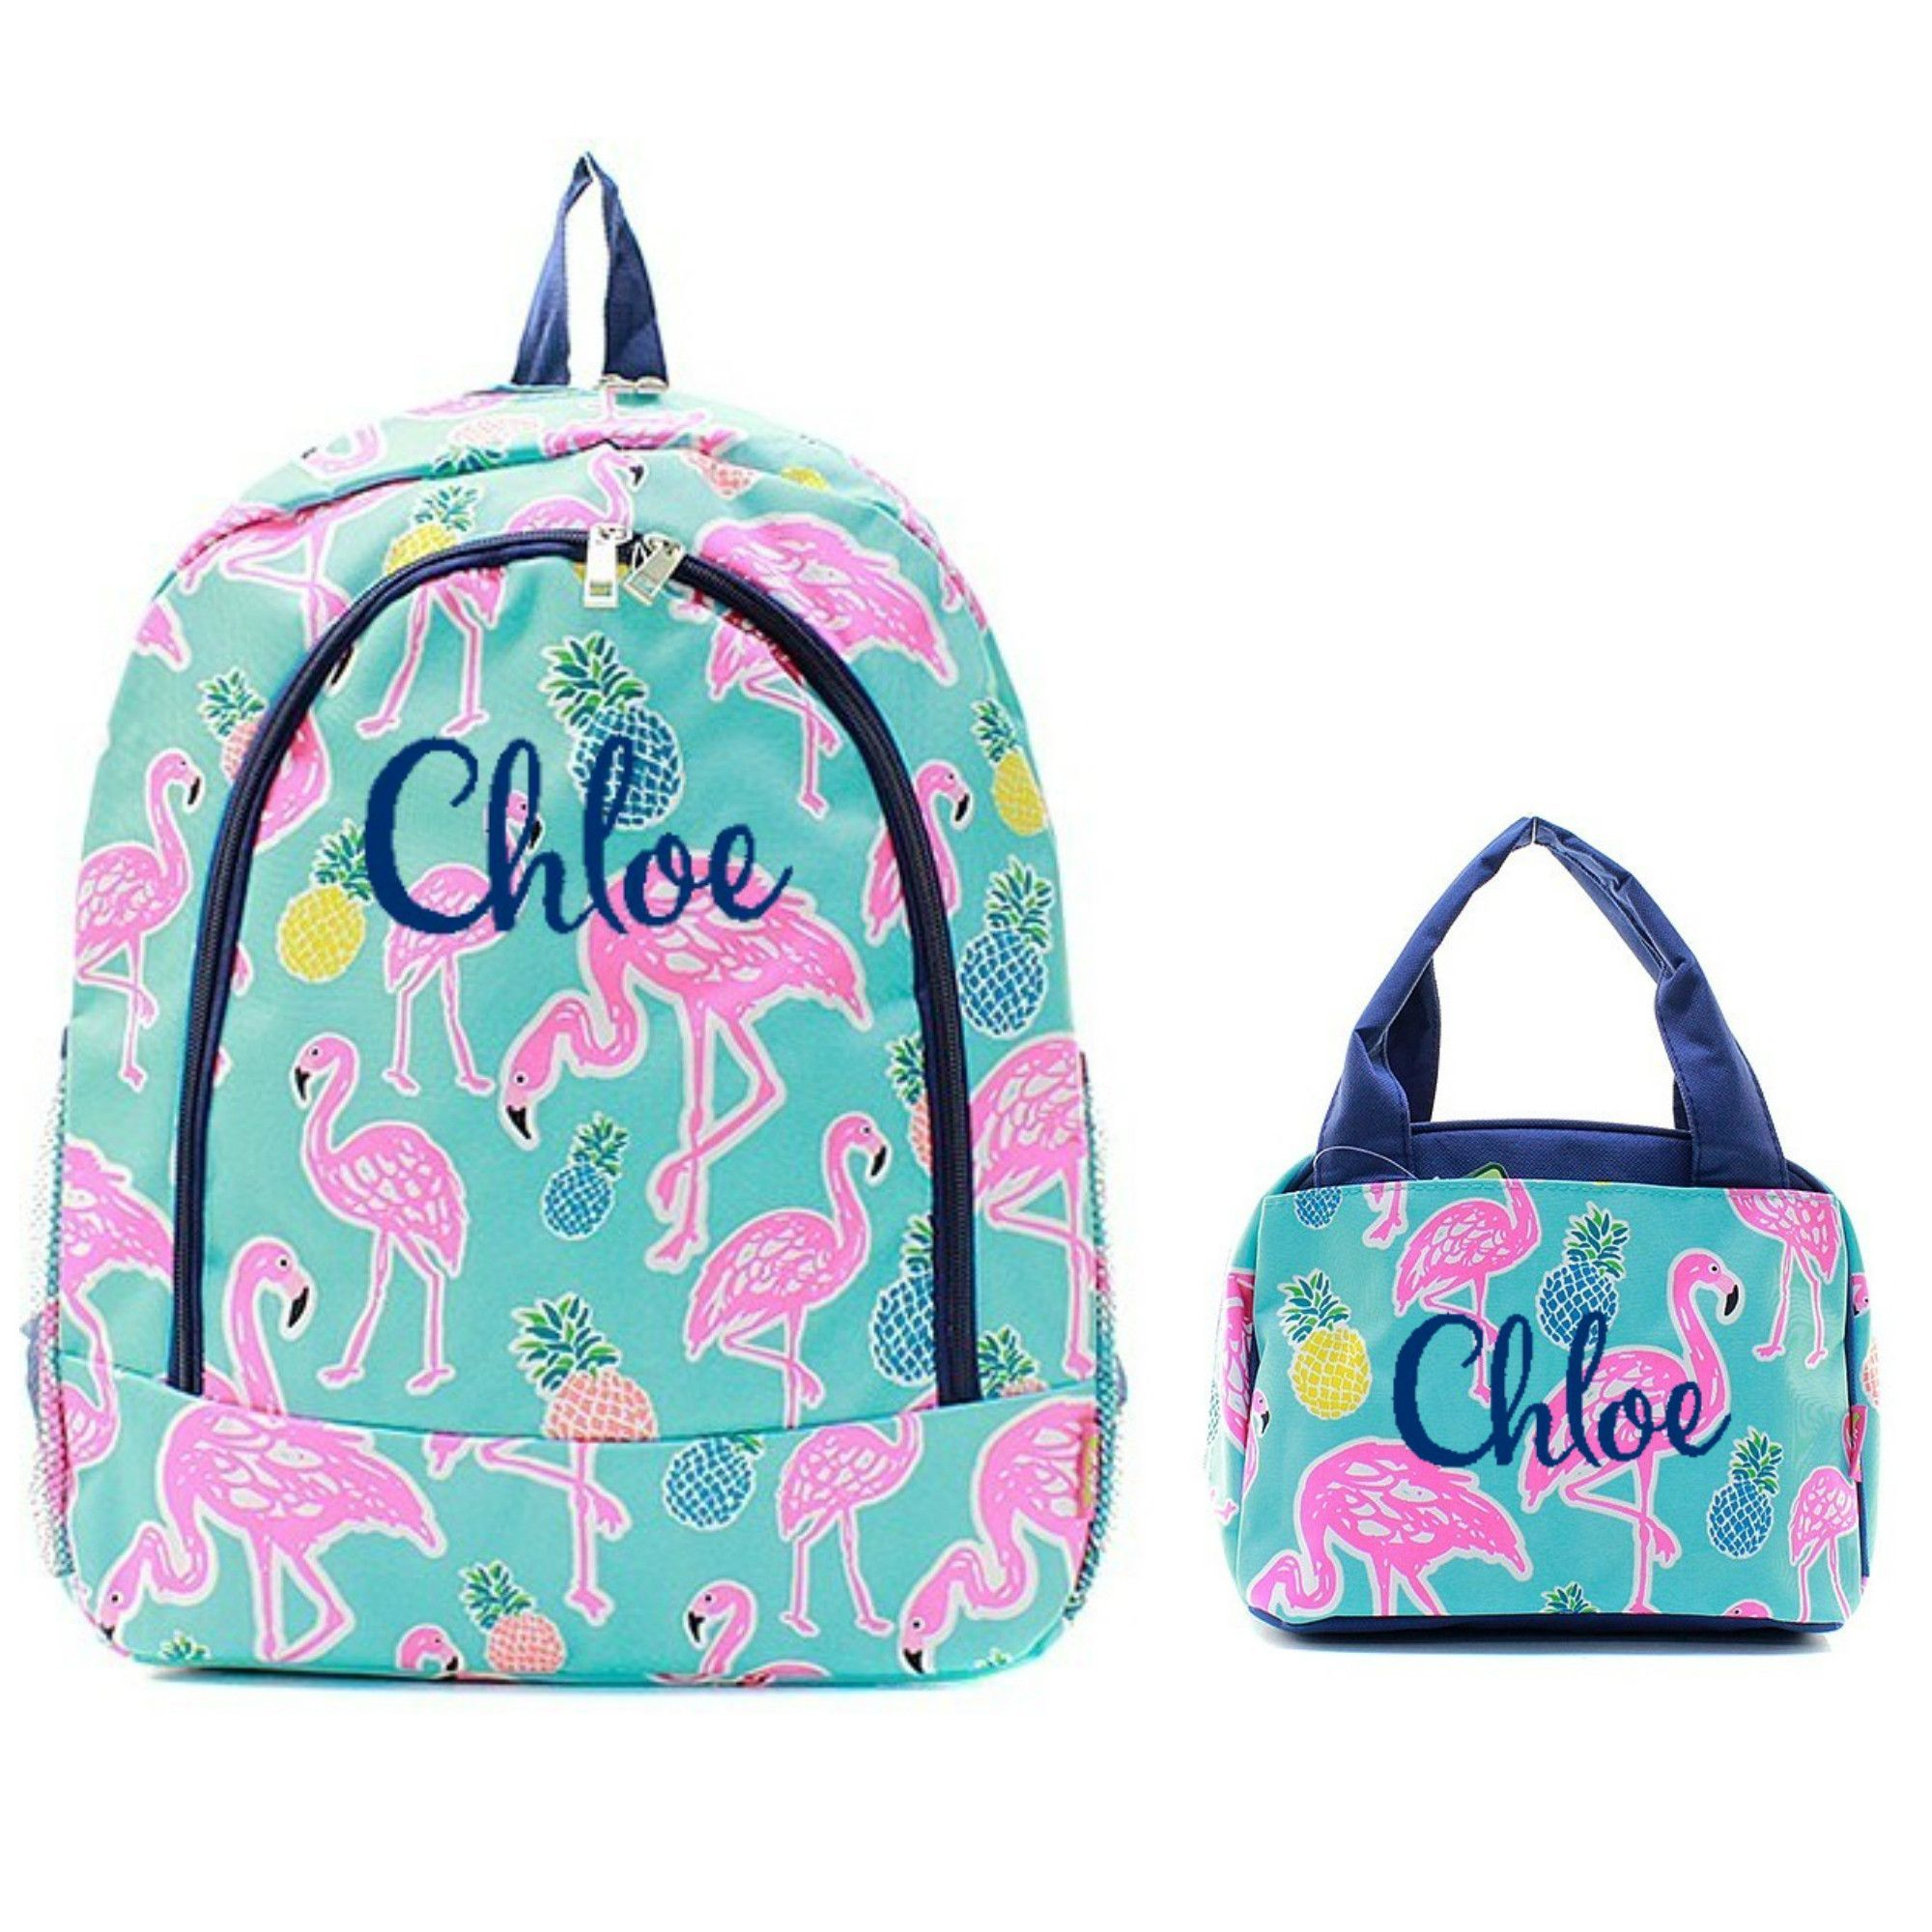 b49cf93447a7 Matching Flamingo Navy Personalized Kids Backpack & Lunch Bag Set ...